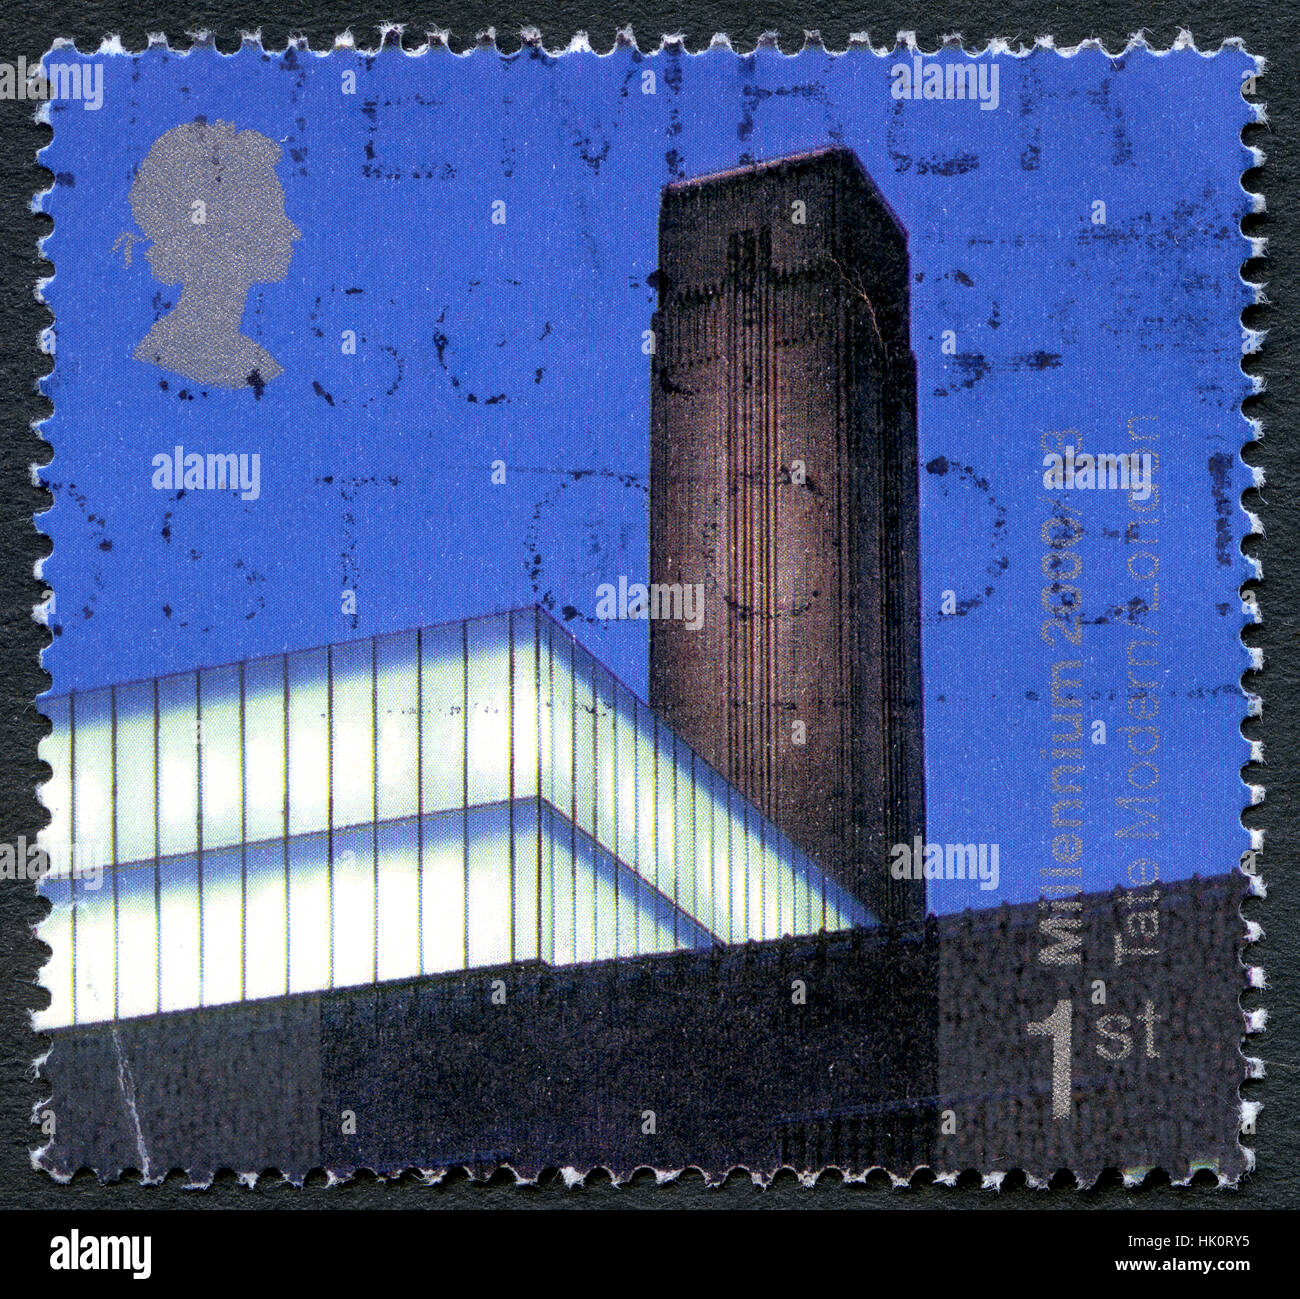 UK- CIRCA 2000: A used UK postage stamp, depicting an image of the exterior of the magnificent Tate Modern gallery - Stock Image